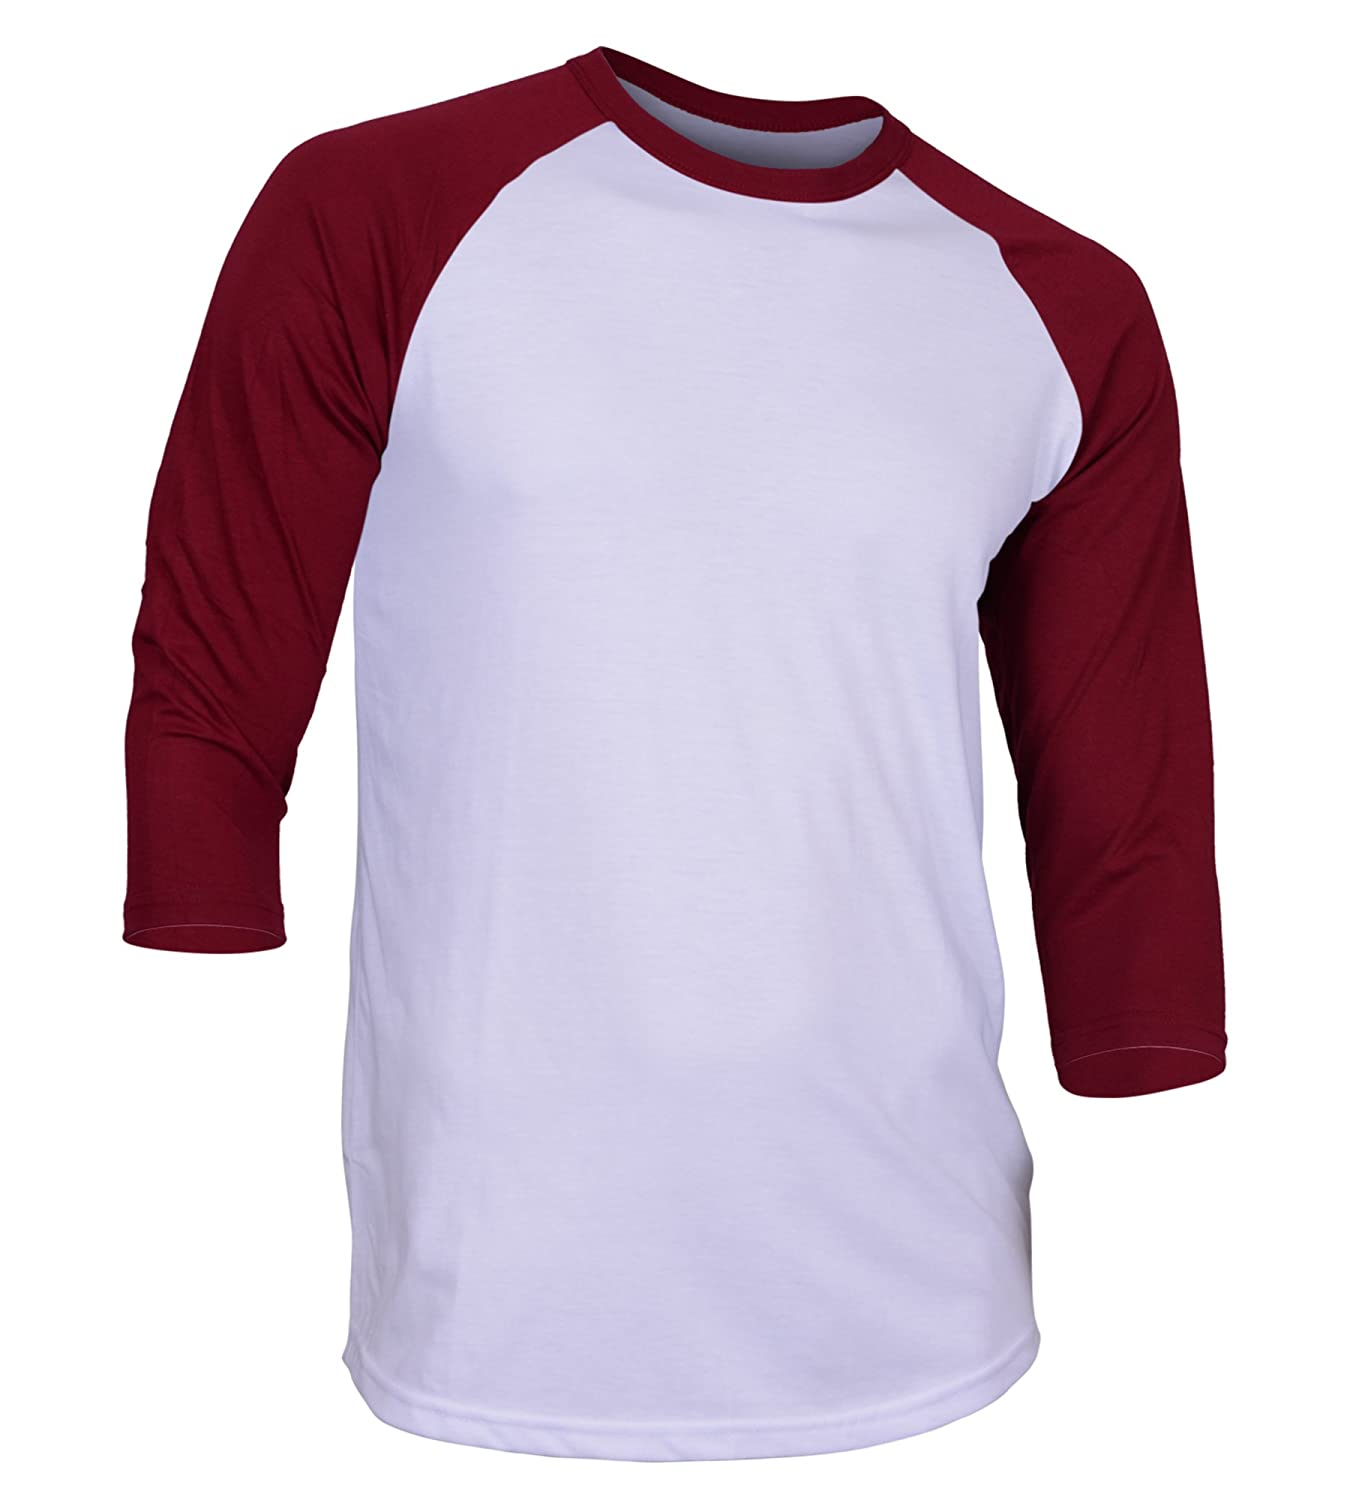 Dream USA Men's Casual 3/4 Sleeve Baseball Tshirt Raglan Jersey Shirt DT-25